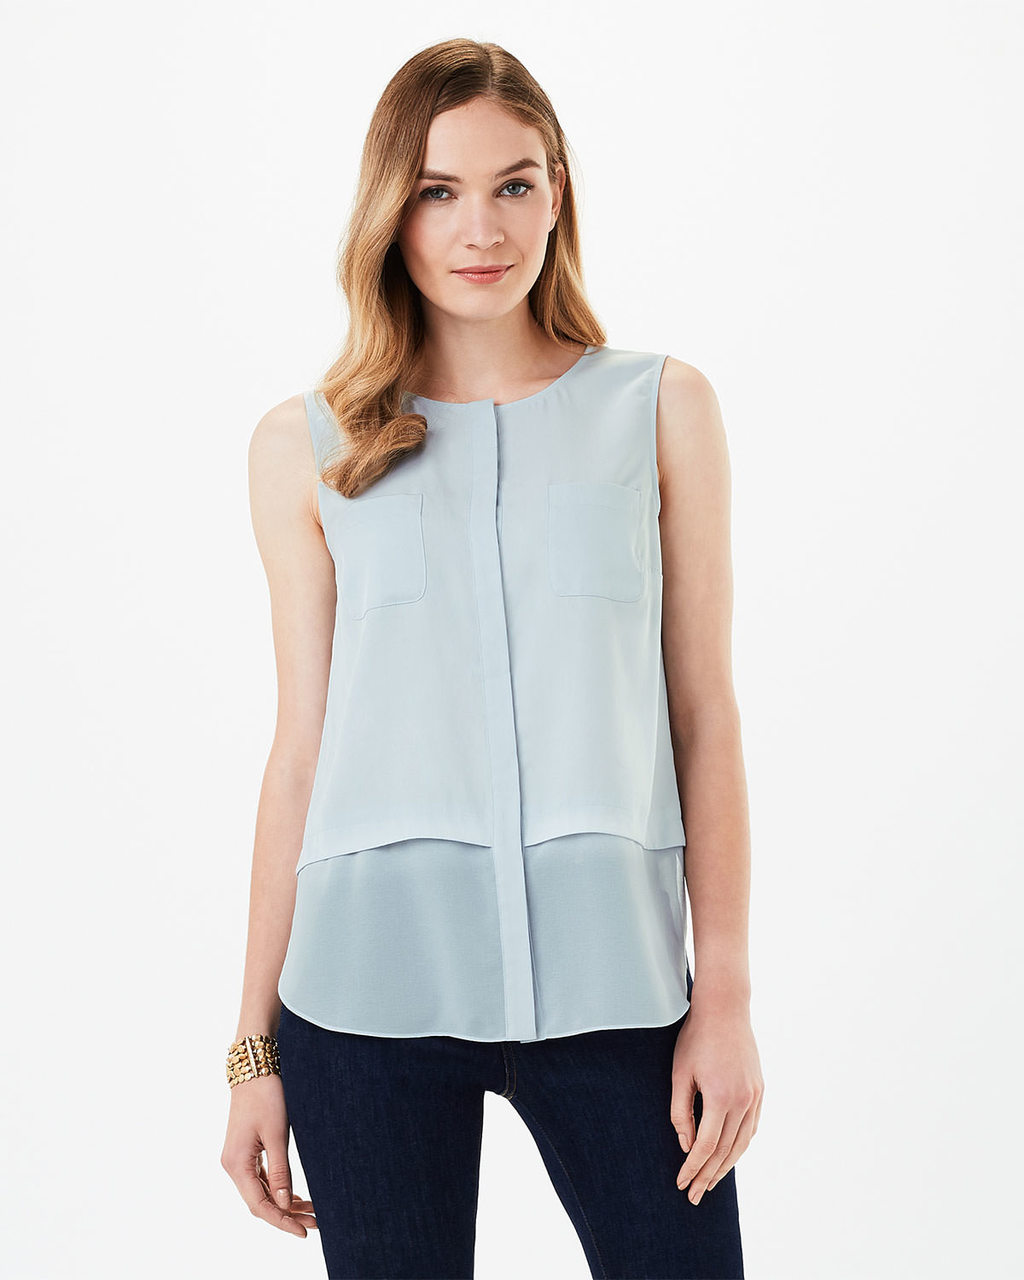 Megan Woven Mix Sleeveless Top - neckline: round neck; pattern: plain; sleeve style: sleeveless; predominant colour: pale blue; occasions: casual, work, creative work; length: standard; style: top; fibres: polyester/polyamide - 100%; fit: body skimming; sleeve length: sleeveless; texture group: sheer fabrics/chiffon/organza etc.; pattern type: fabric; season: s/s 2016